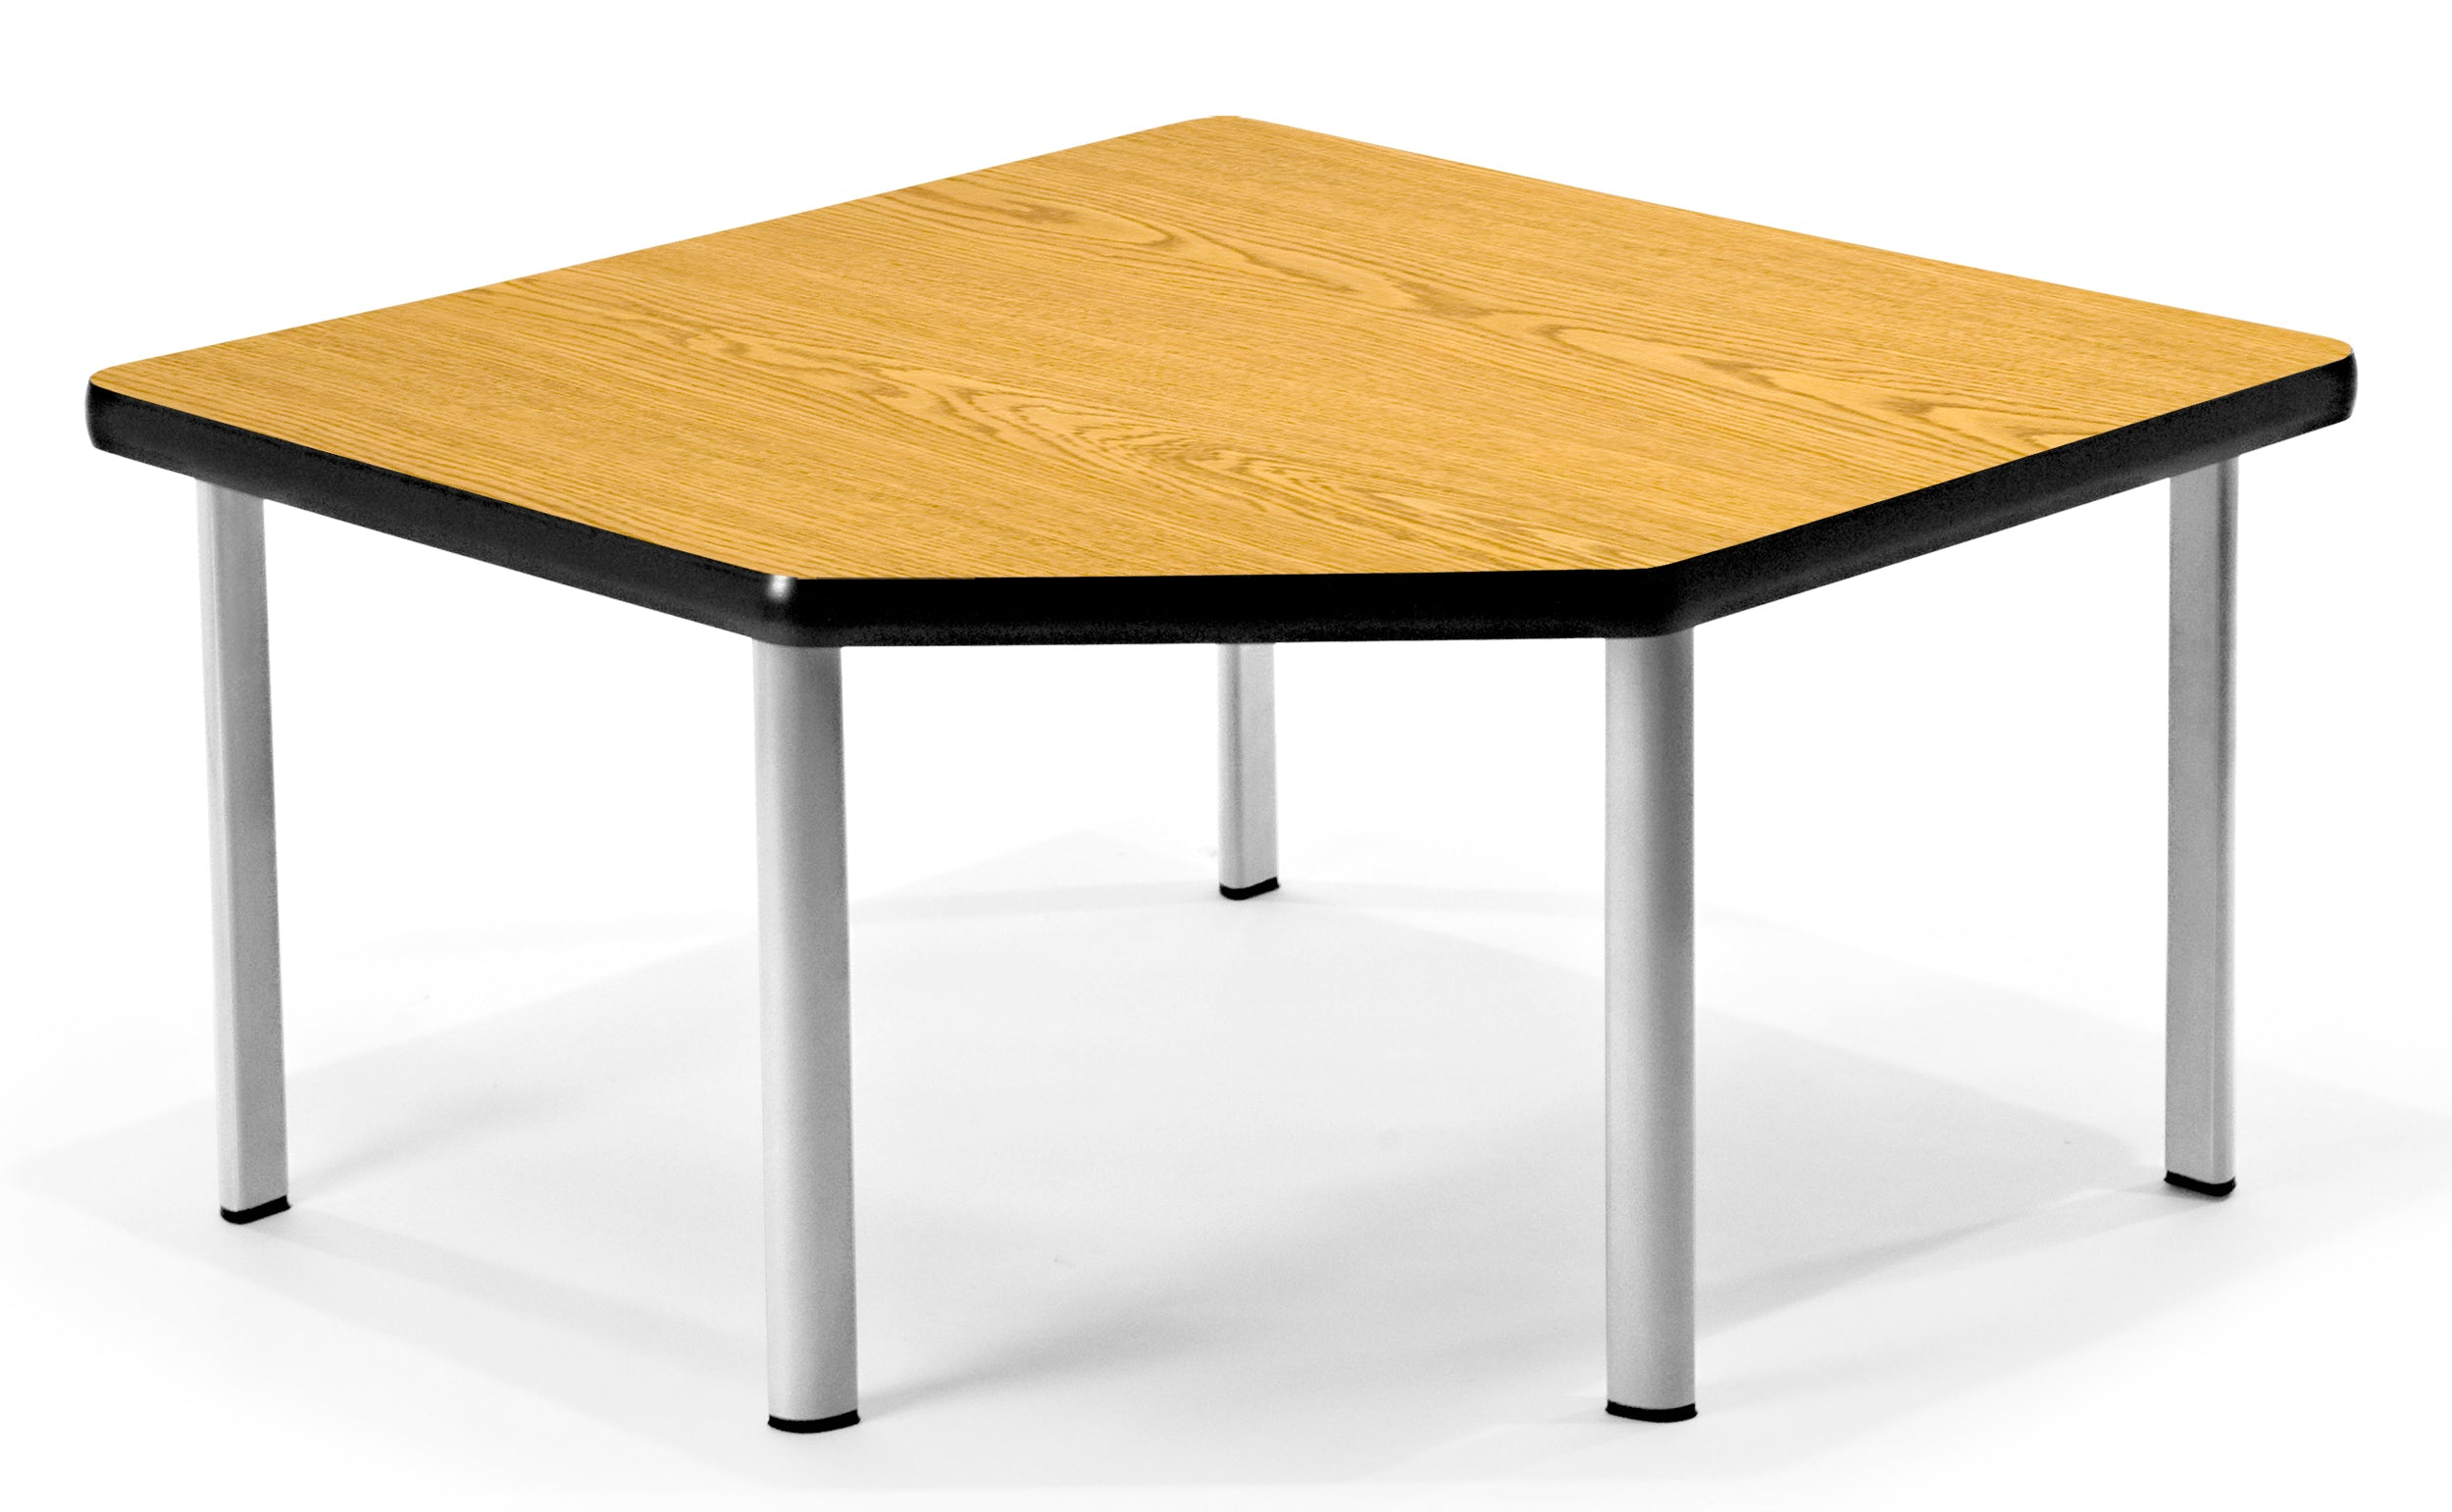 Ofminc Model ET3030 Corner Table with 5 Legs